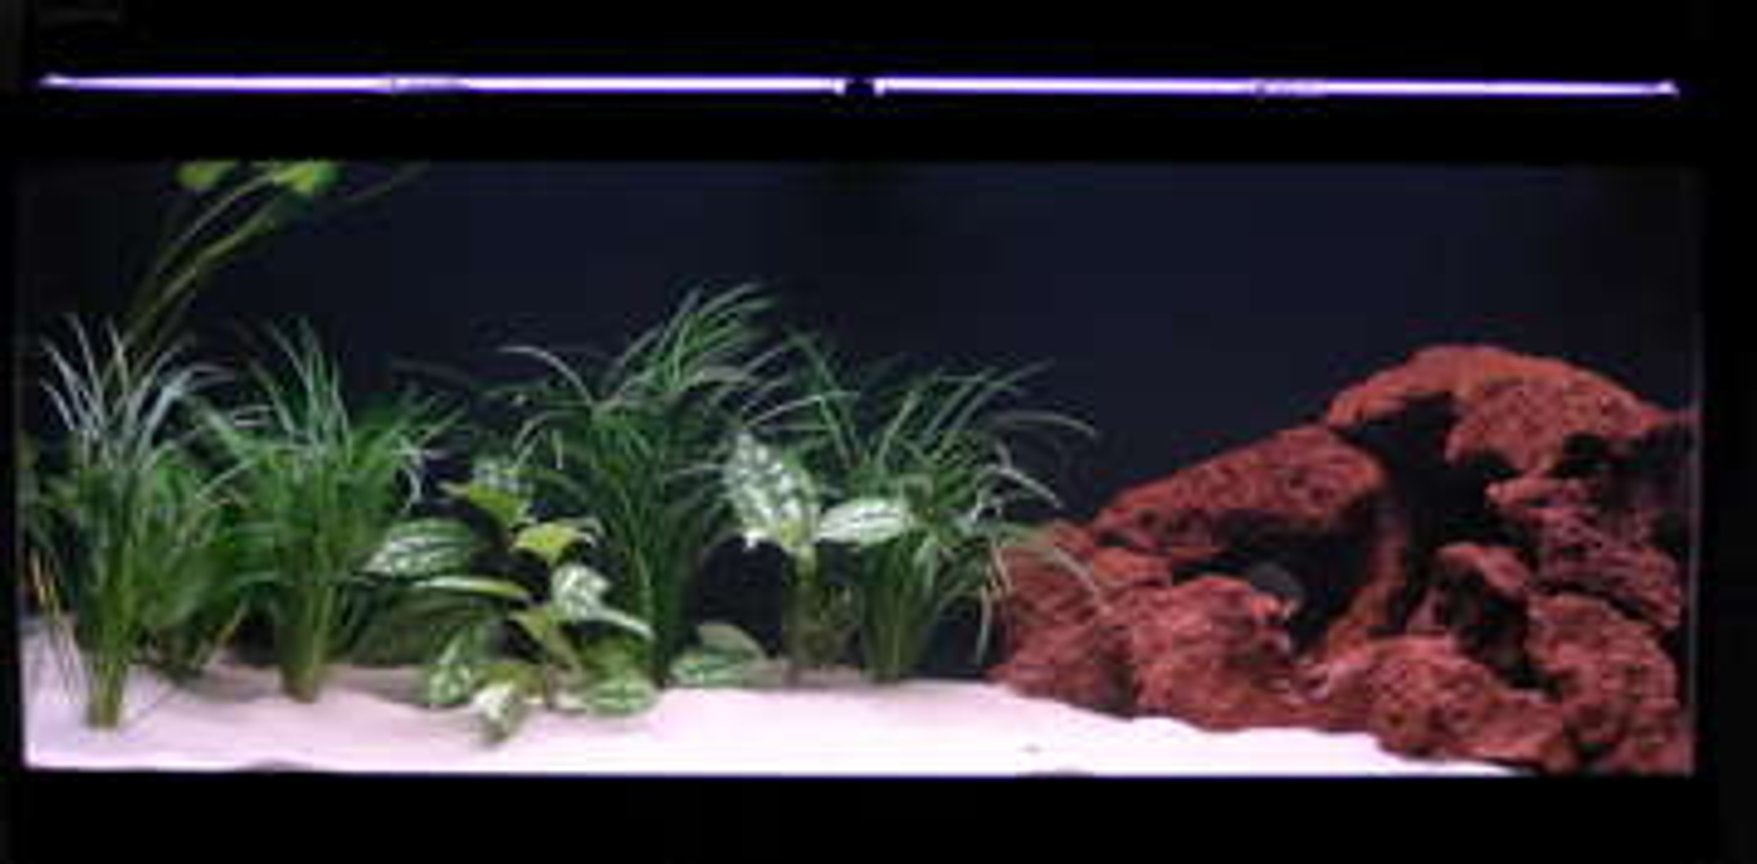 75 gallons freshwater fish tank (mostly fish and non-living decorations) - my 75g piranha tank